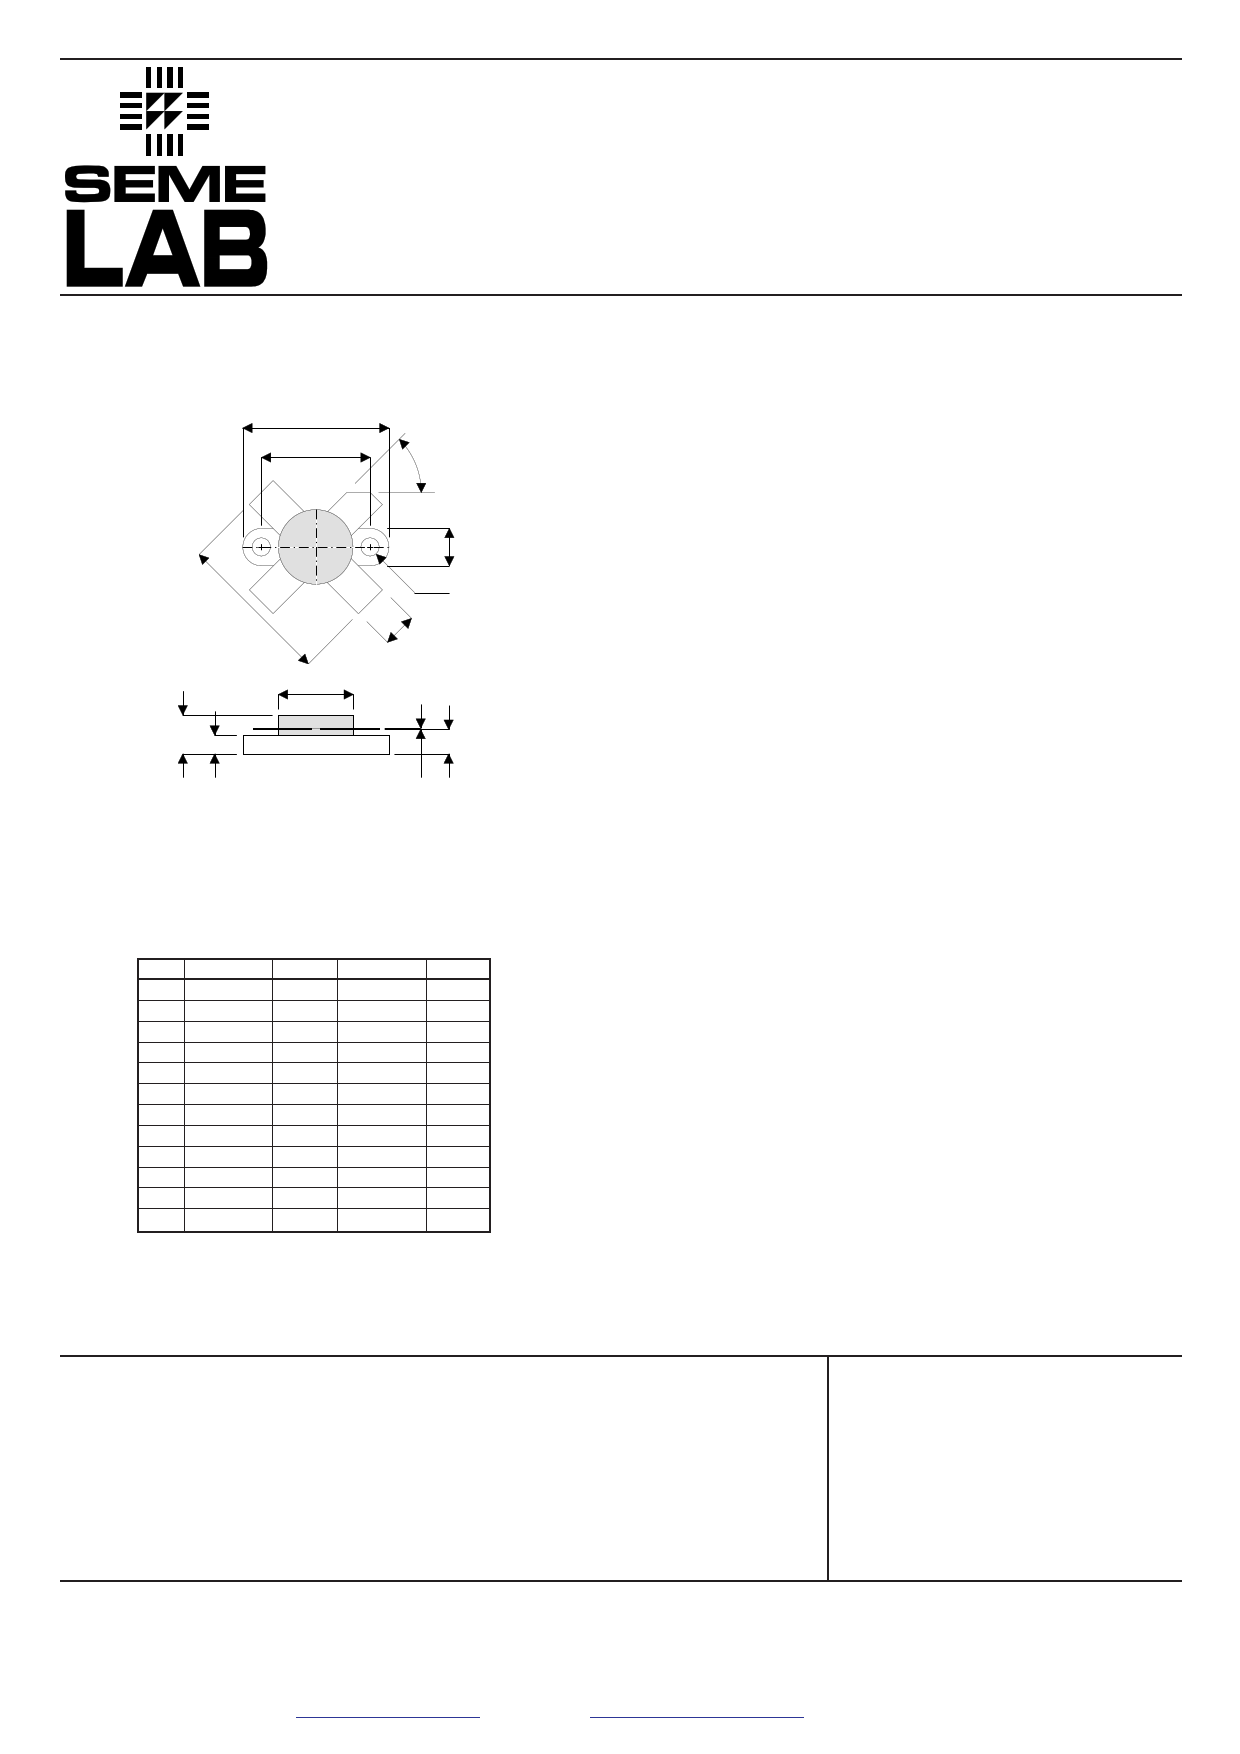 D1003UK datasheet